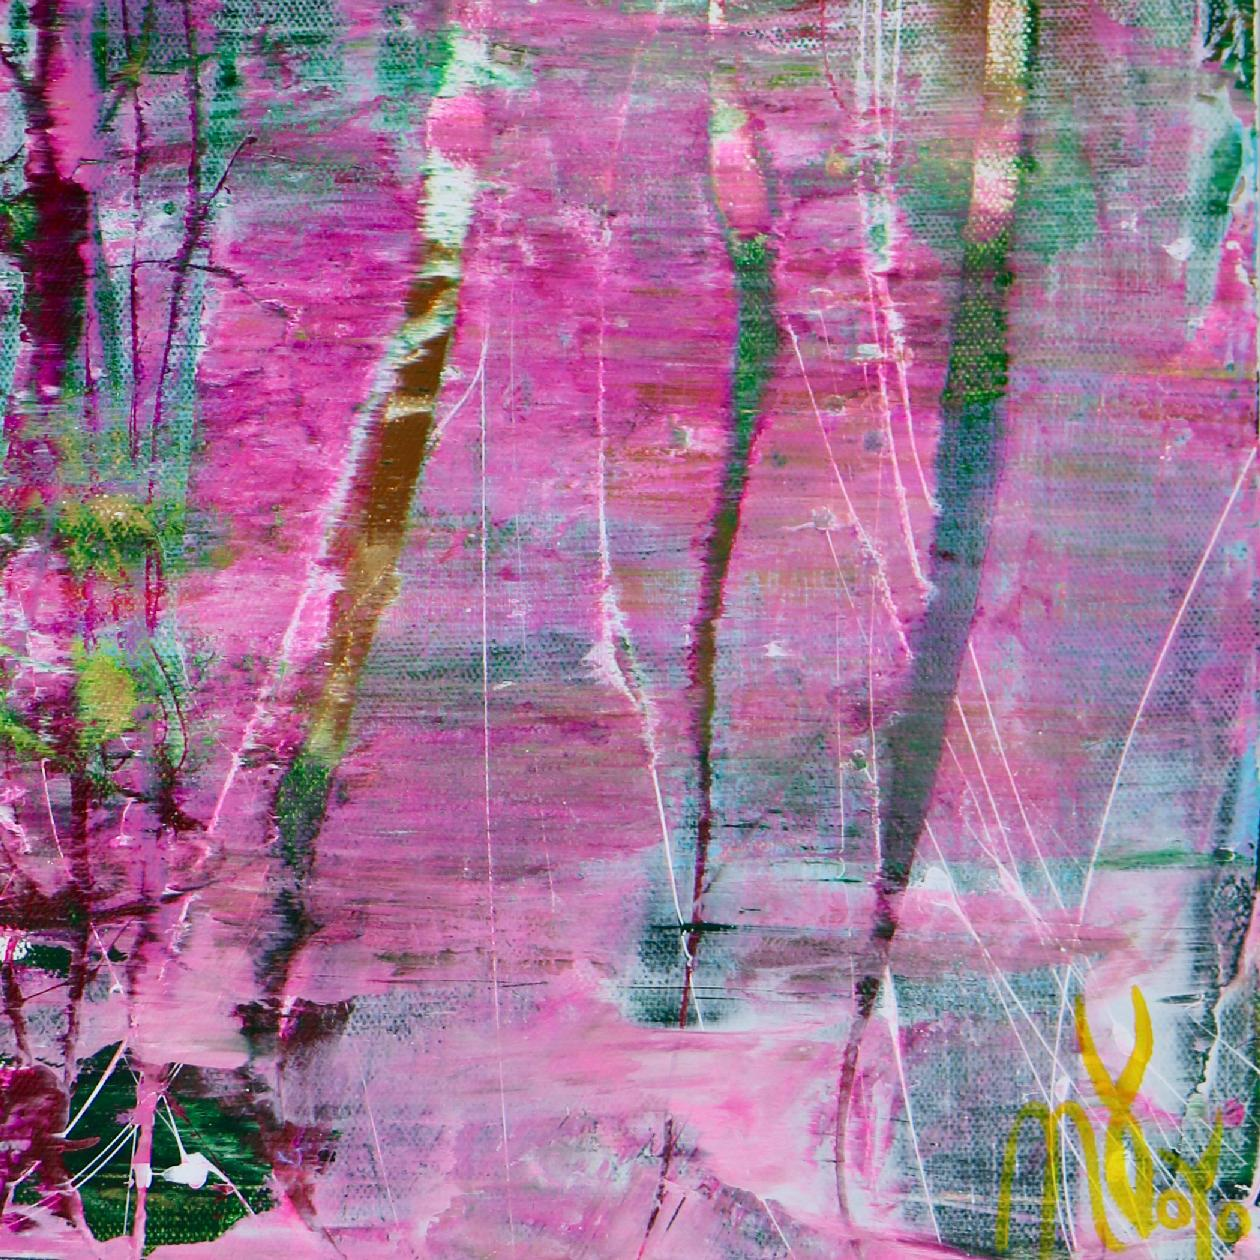 Signature - Full Image - 30x24 inches - A Closer Look (Avant Garden) 2 (2020) by Nestor Toro - Los Angeles